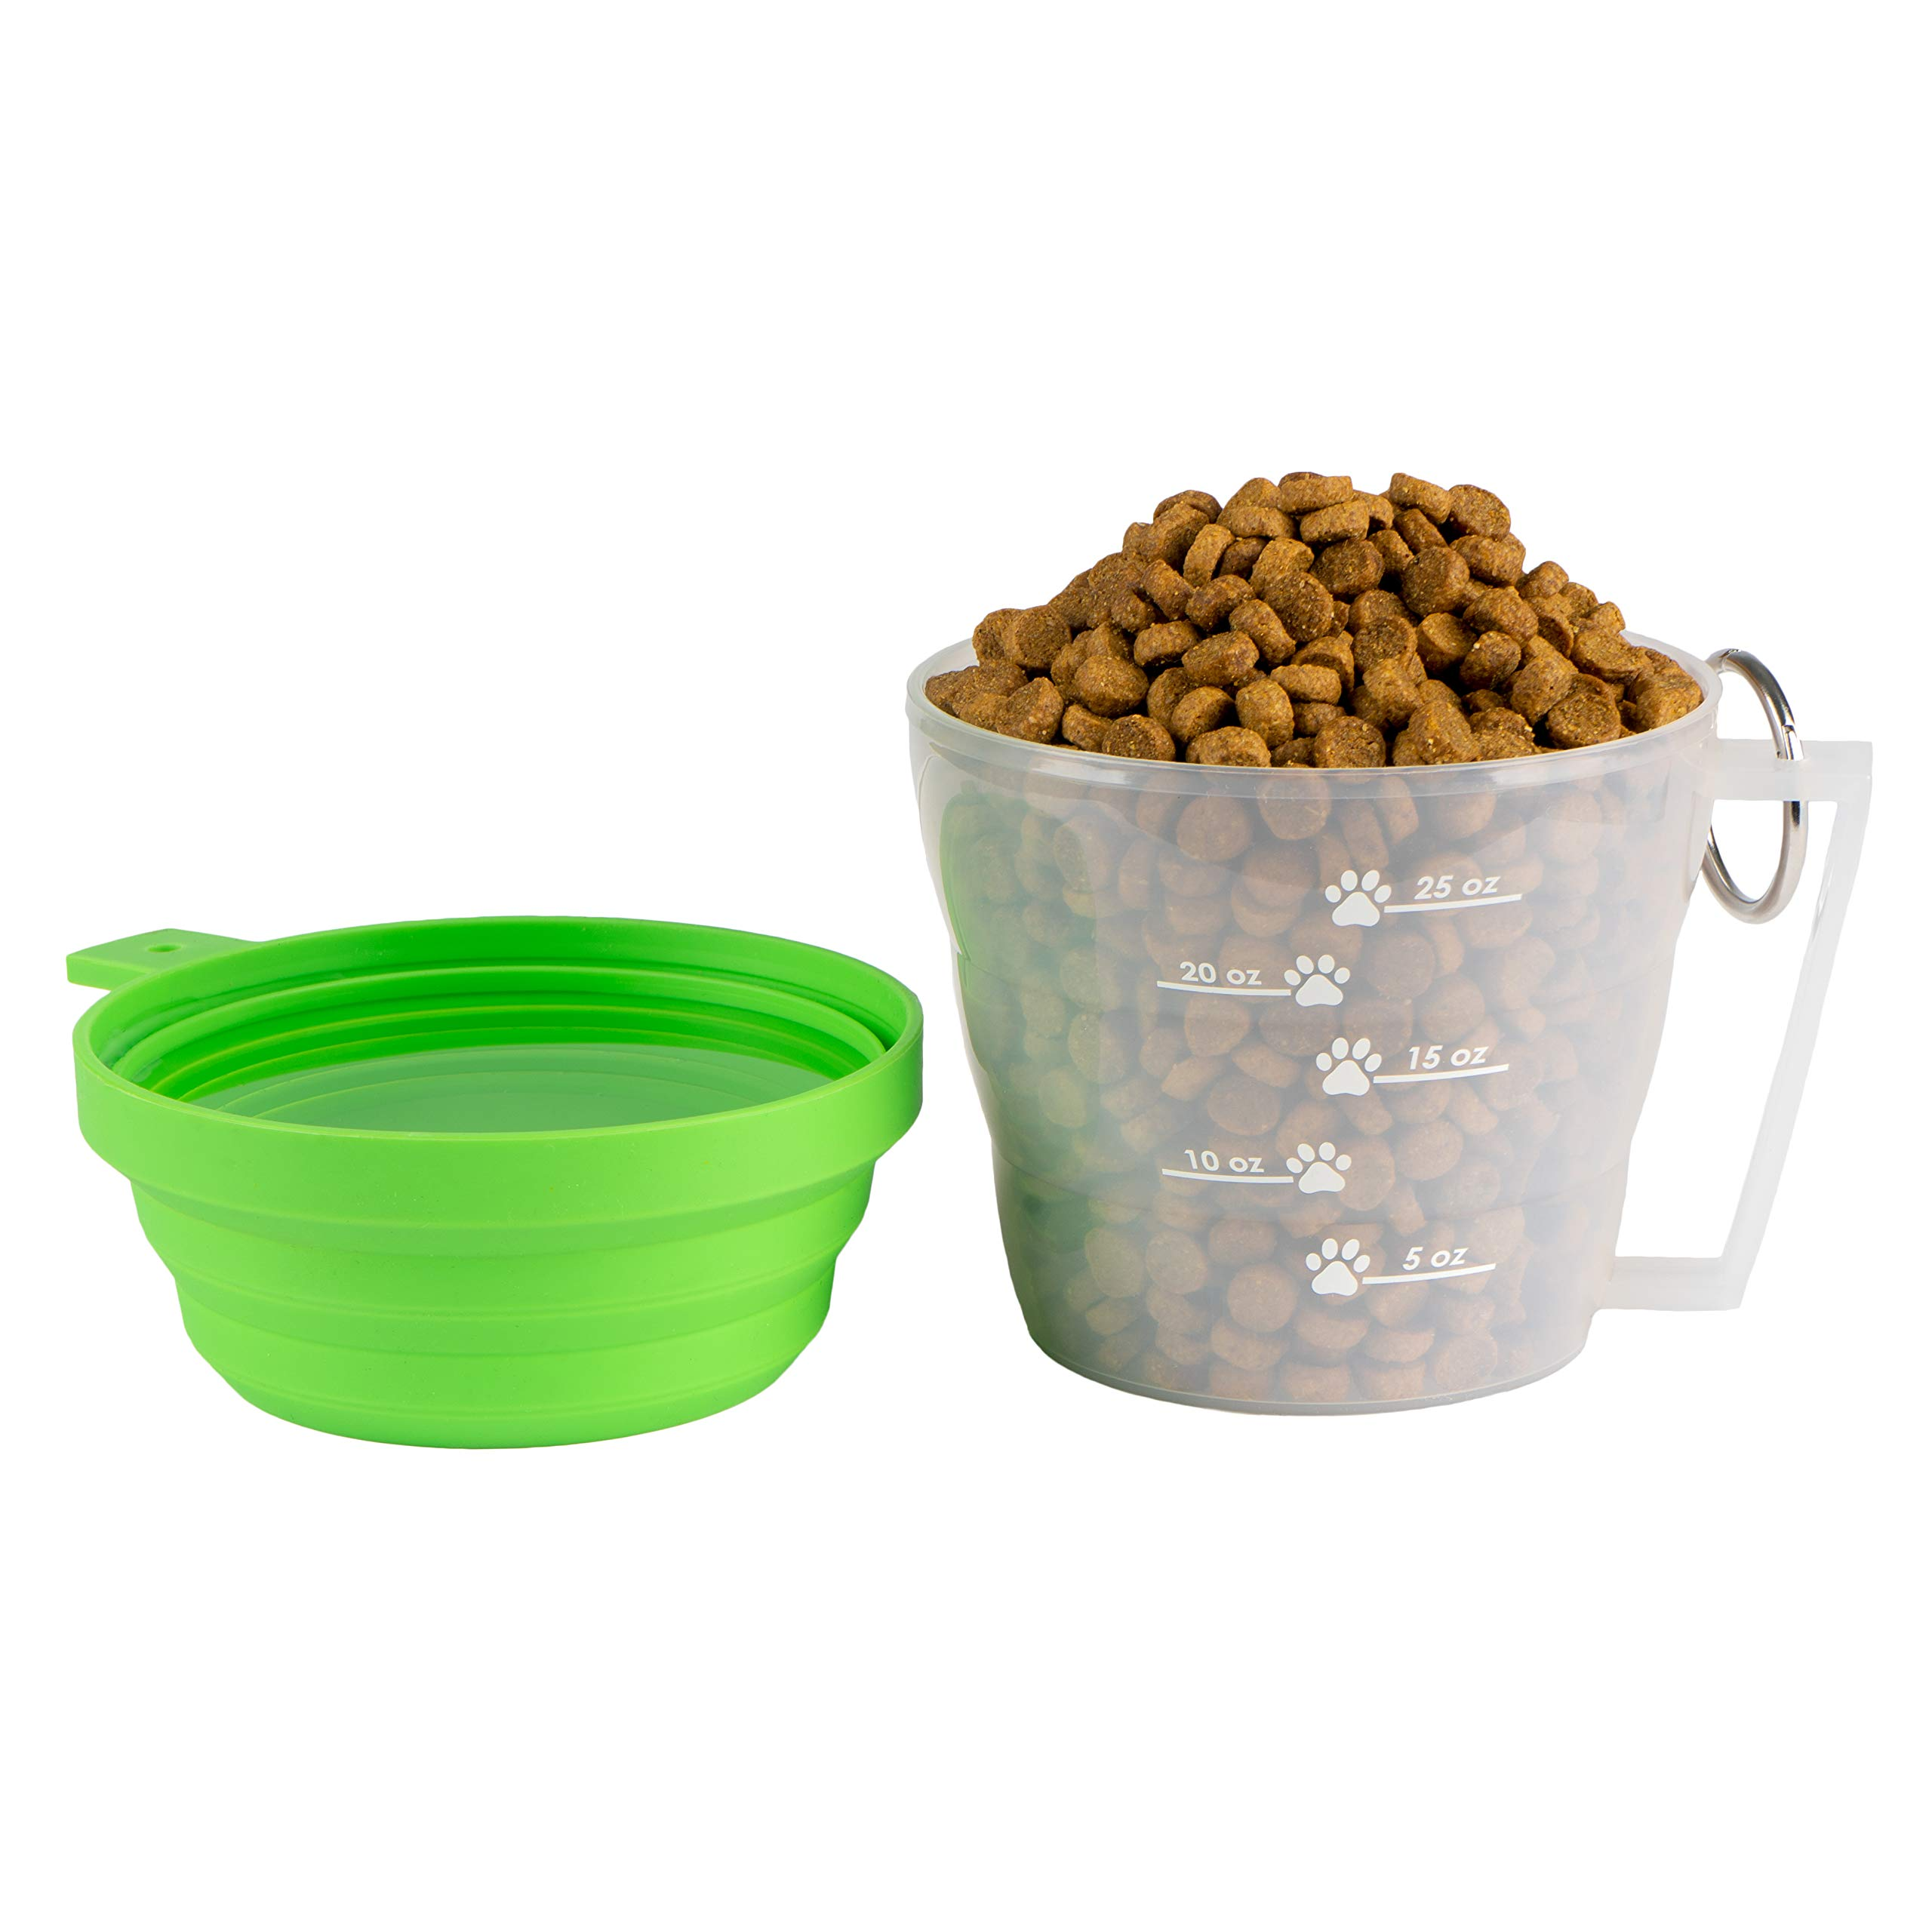 MAXY Dog Food Travel Container, BPA-Free Pet Food Storage Container, Portable Collapsible Bowl and Measuring Cup Combo for Pet Travel, Reusable Plastic Bowl for Cats and Dogs - Mirecek by Mirecek